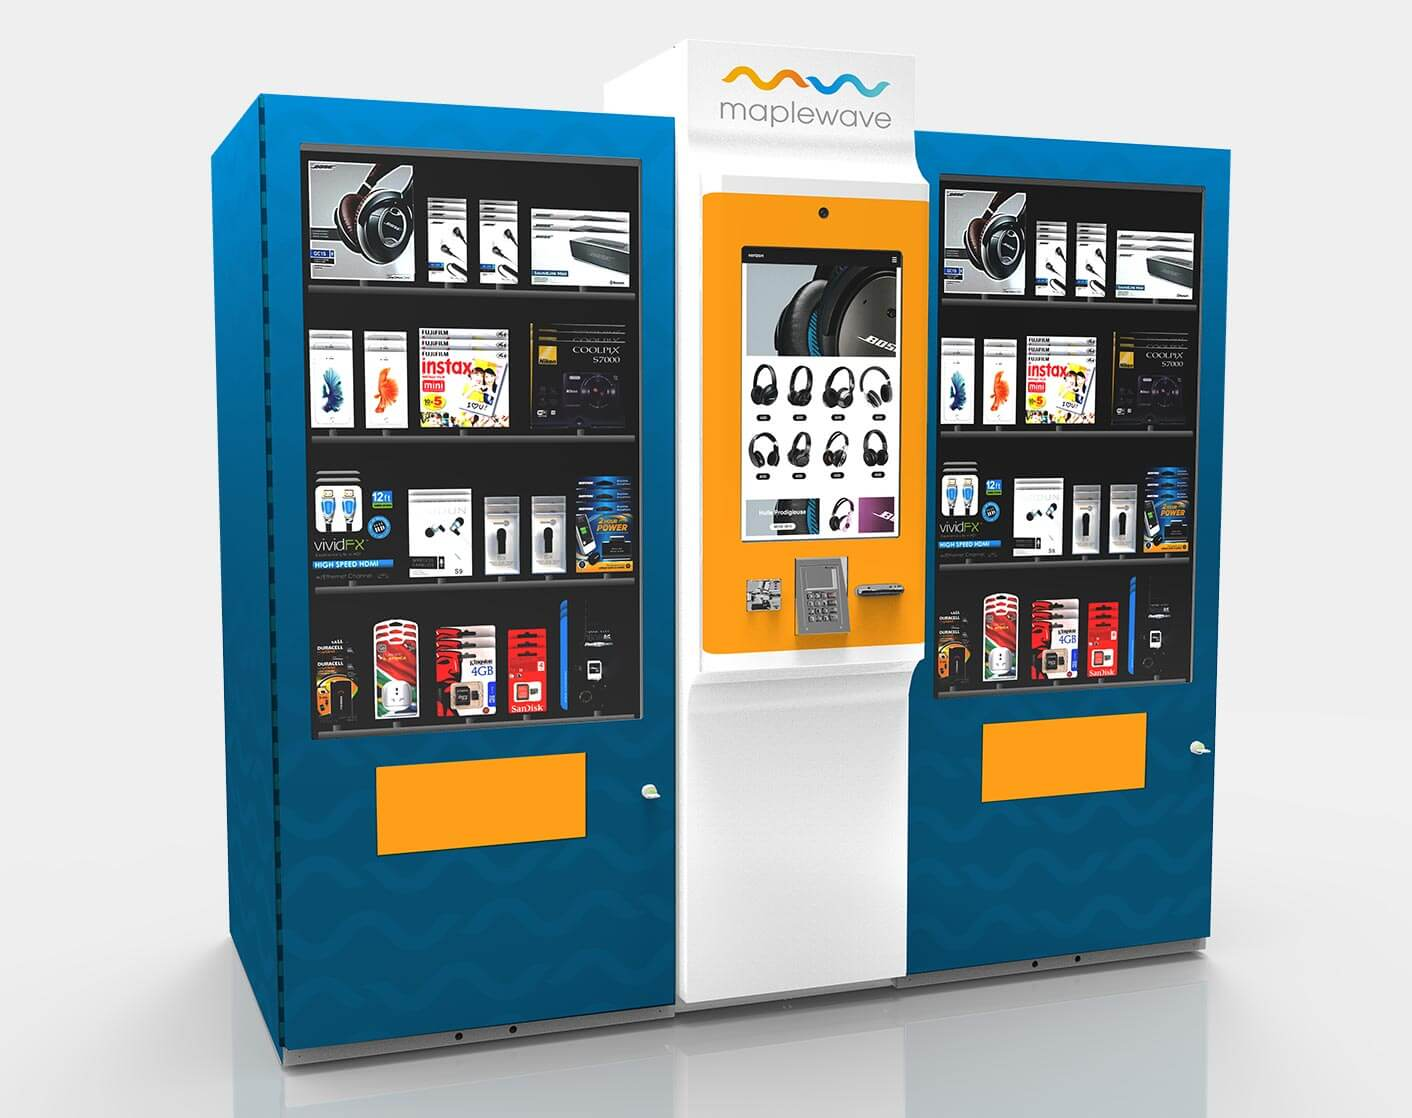 Kiosk station with two vending lockers